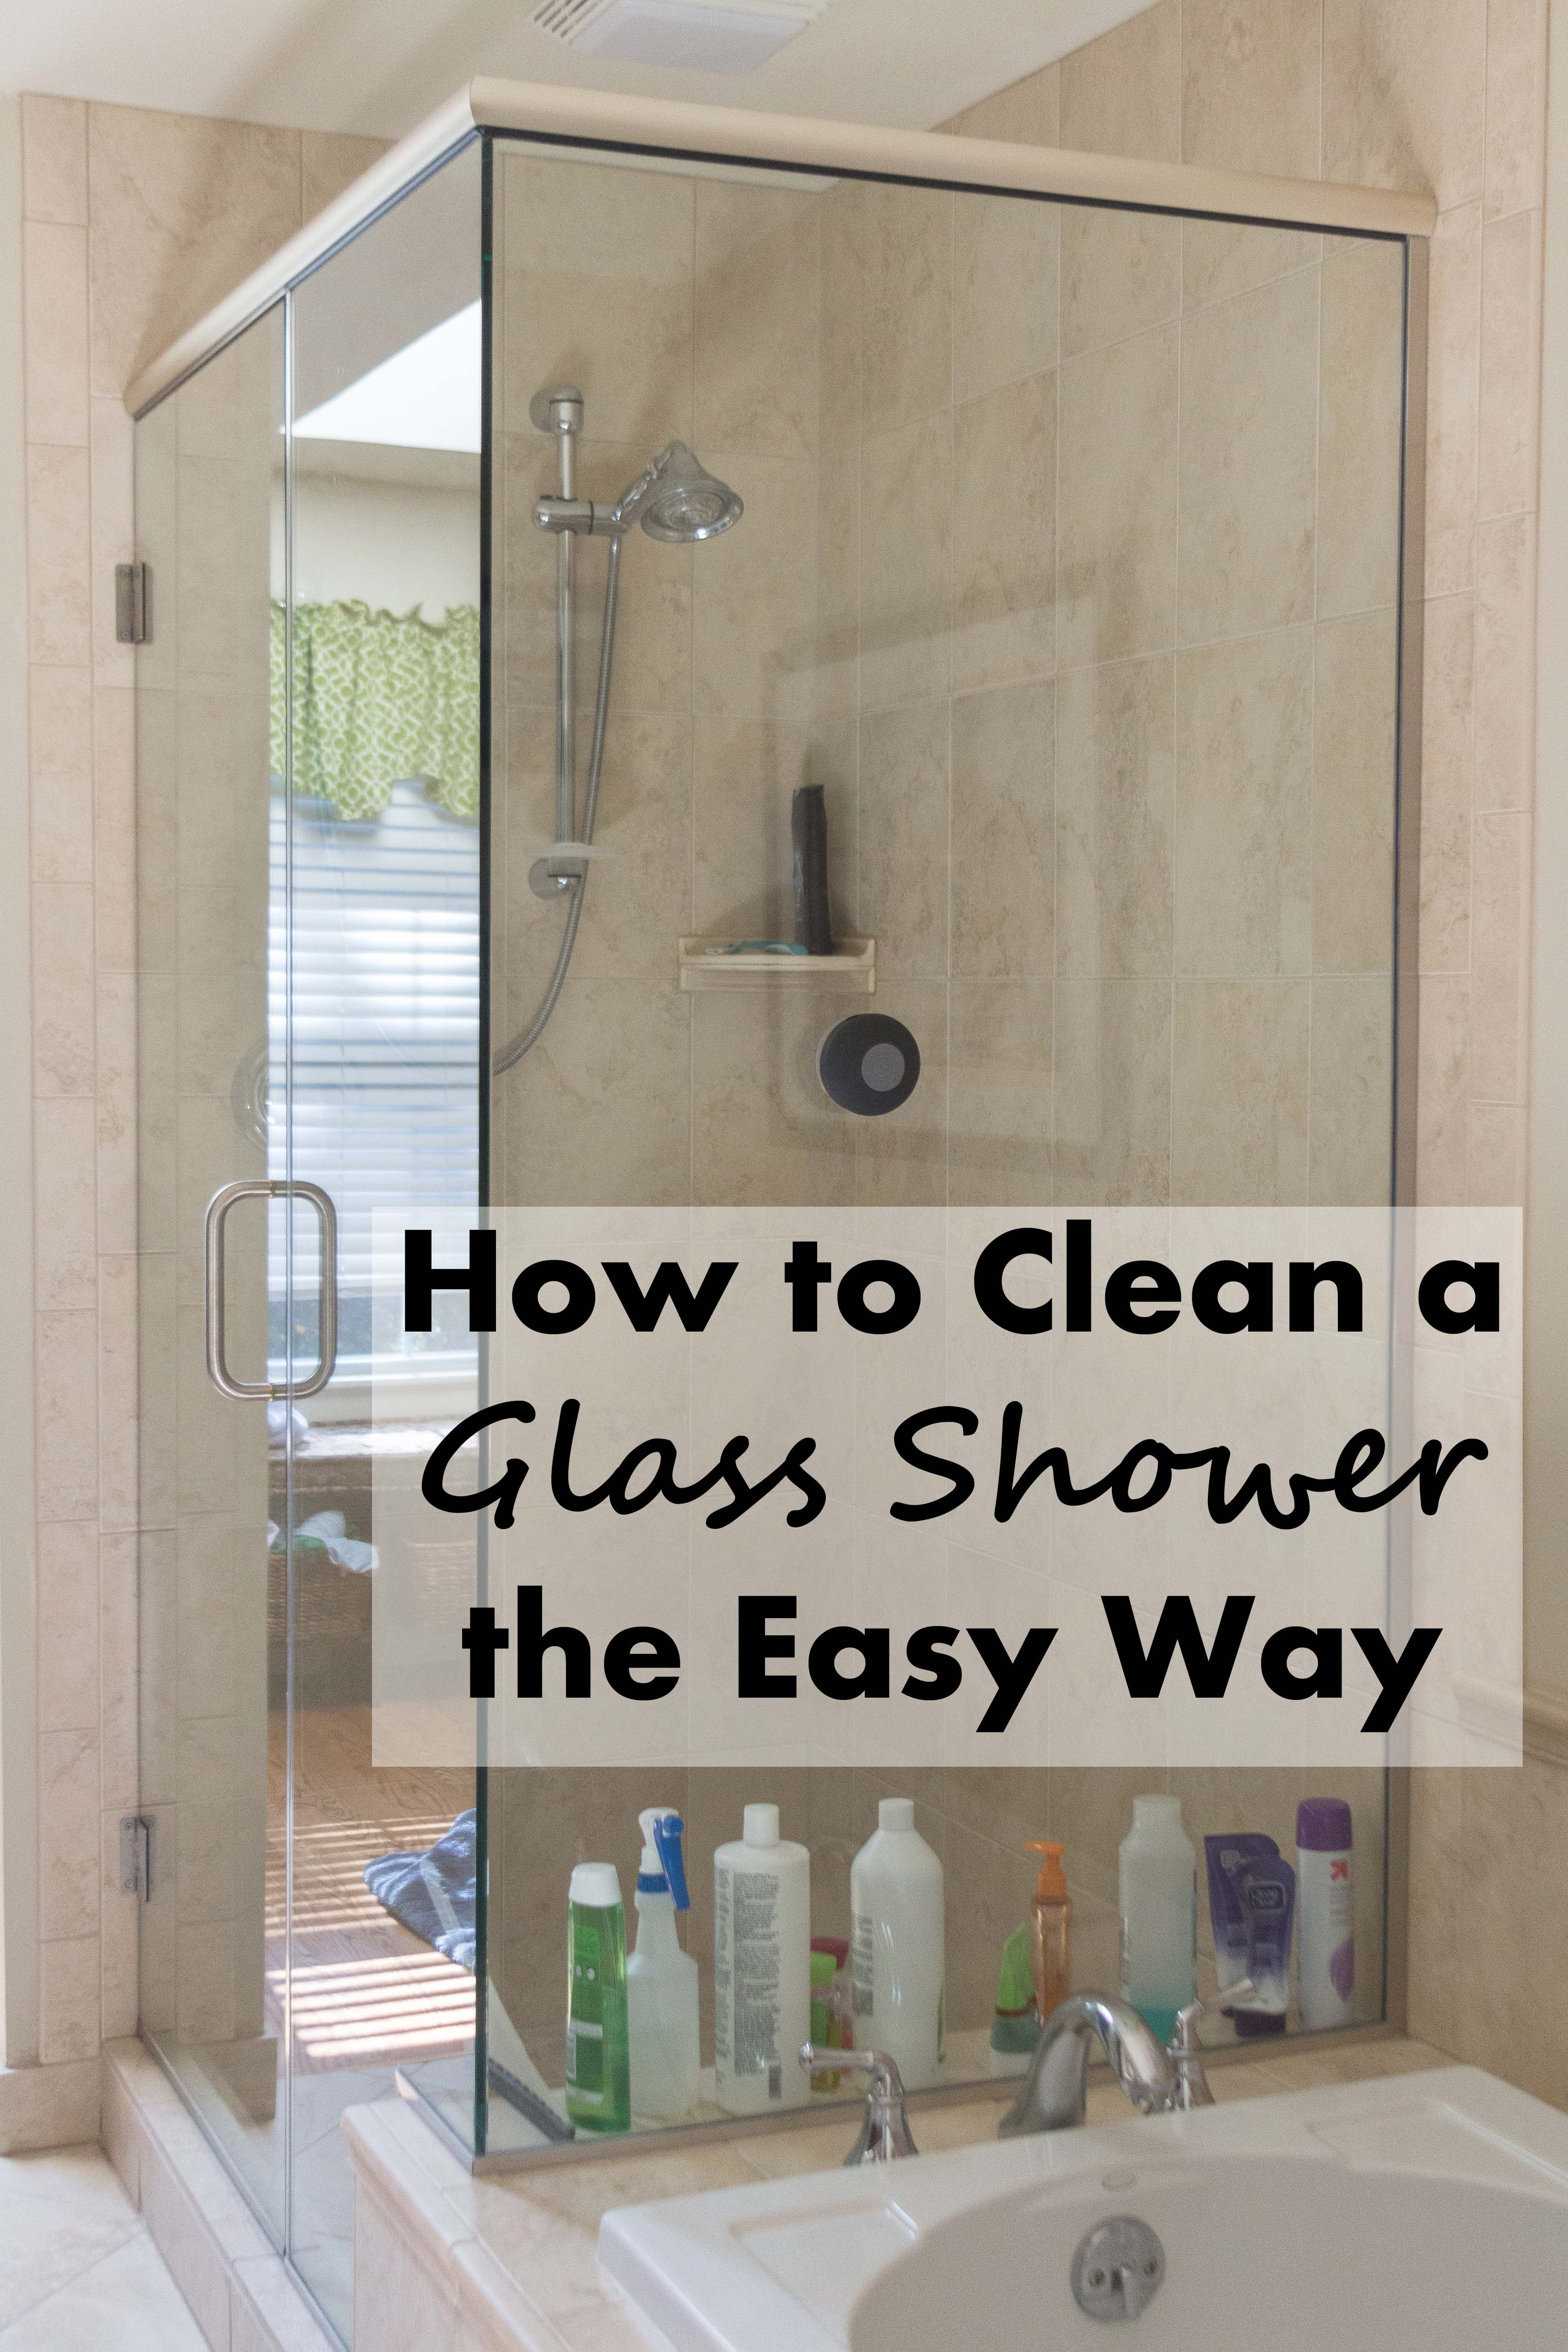 Top 10 Most Popular Posts Of 2018 Glass Shower House Cleaning